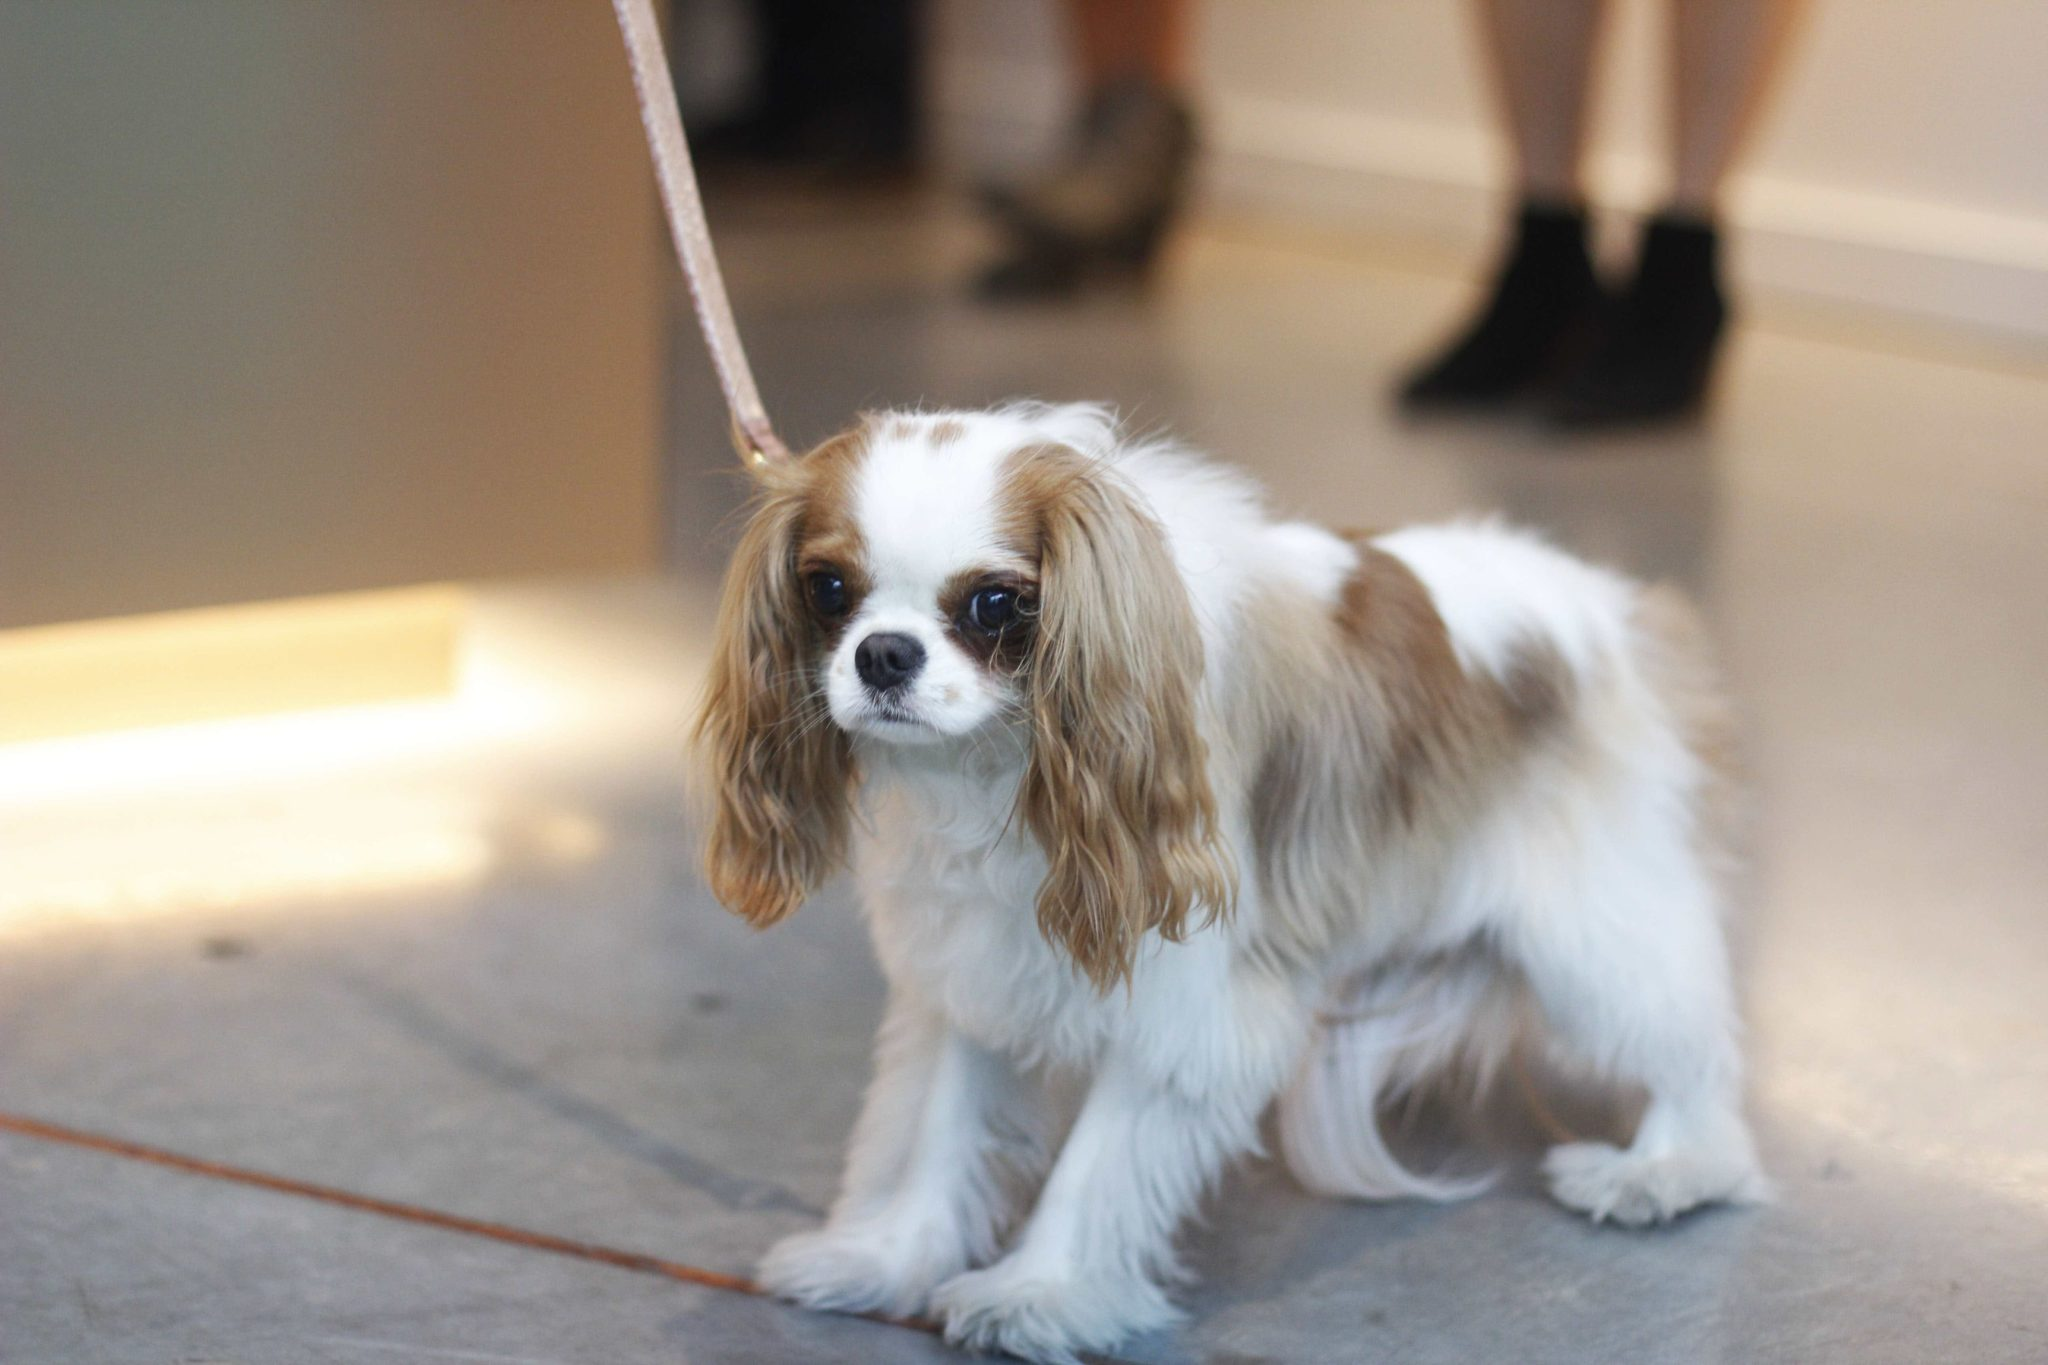 Event recap from the PAWsh Puppy Fashion Show with Kelly Wynne Handbags. Steven Jalapeño and 5 other dogs participated in the Austin Pets Alive runway way show. Click for more info and pictures.